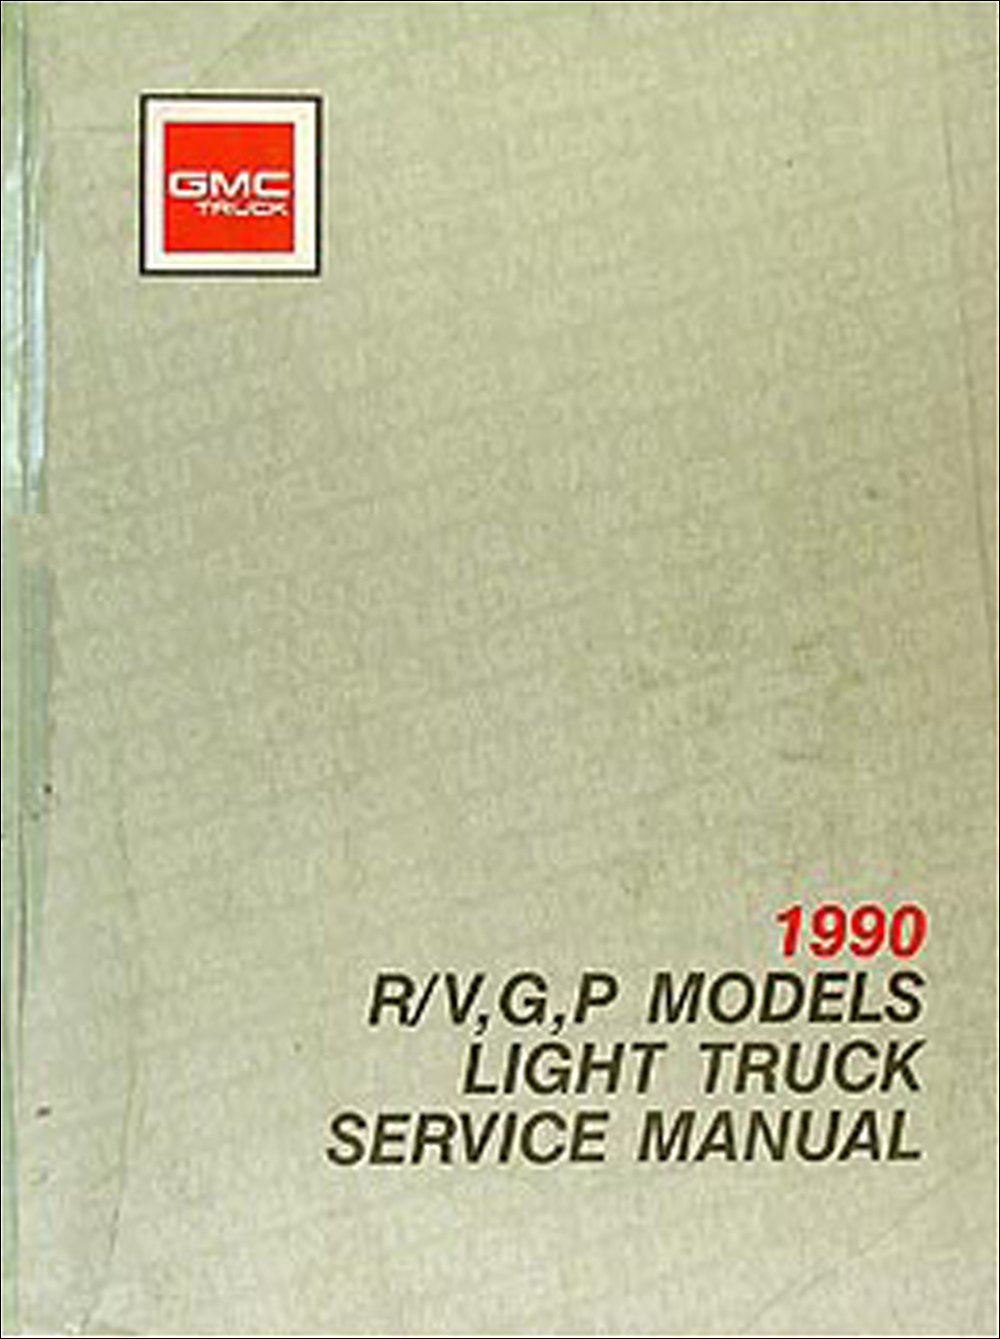 1990 GMC Truck Repair Shop Manual Original R/V Pickup Jimmy Suburban Van FC